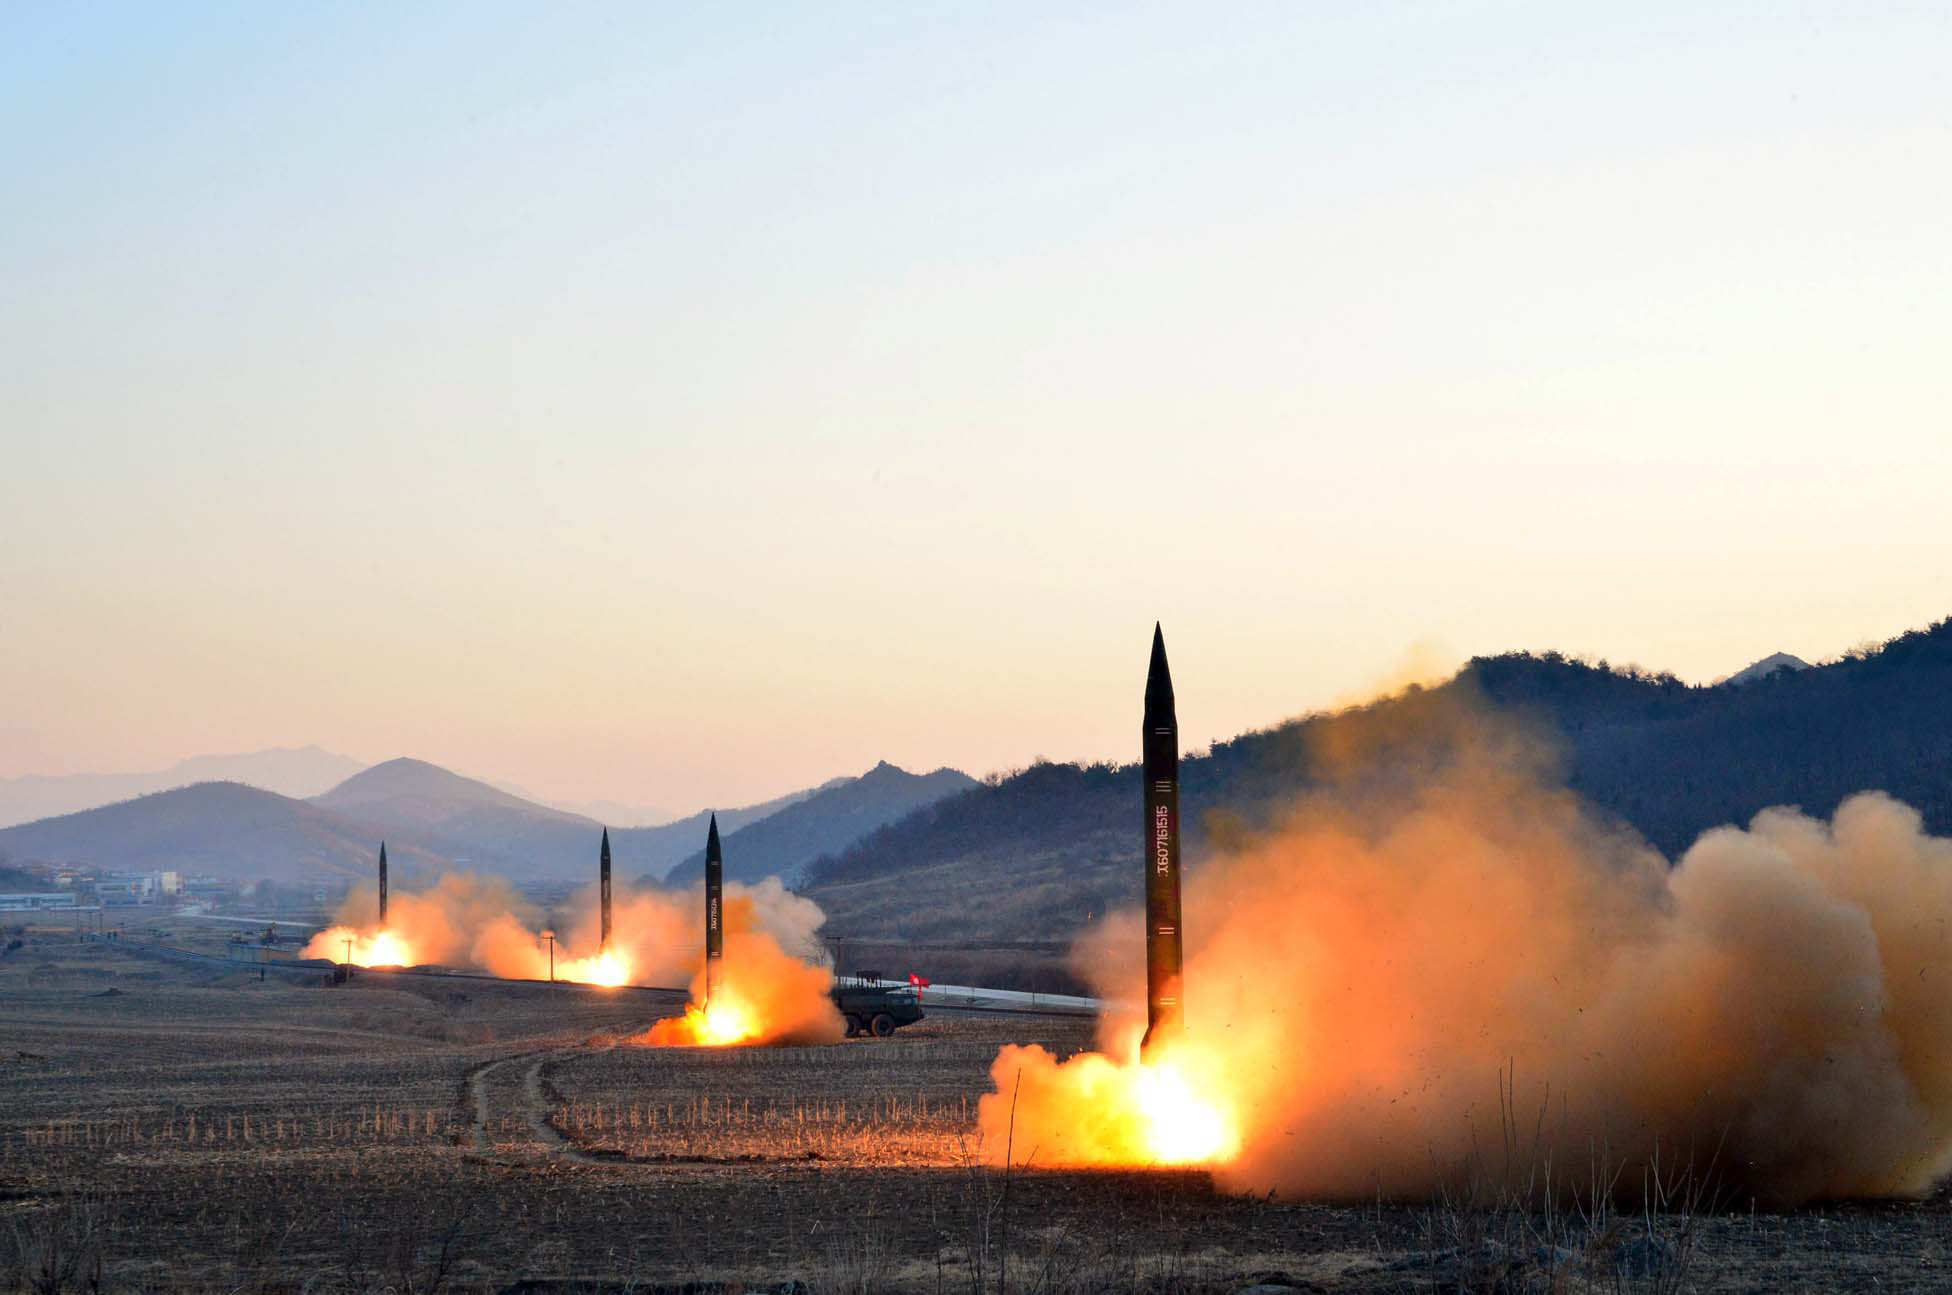 TOPSHOT - This undated picture released by North Korea's Korean Central News Agency (KCNA) via KNS on March 7, 2017 shows the launch of four ballistic missiles by the Korean People's Army (KPA) during a military drill at an undisclosed location in North Korea.                                          Nuclear-armed North Korea launched four ballistic missiles on March 6 in another challenge to President Donald Trump, with three landing provocatively close to America's ally Japan. / AFP PHOTO / KCNA VIA KNS / STR / South Korea OUT / REPUBLIC OF KOREA OUT   ---EDITORS NOTE--- RESTRICTED TO EDITORIAL USE - MANDATORY CREDIT  AFP PHOTO/KCNA VIA KNS  - NO MARKETING NO ADVERTISING CAMPAIGNS - DISTRIBUTED AS A SERVICE TO CLIENTS                     THIS PICTURE WAS MADE AVAILABLE BY A THIRD PARTY. AFP CAN NOT INDEPENDENTLY VERIFY THE AUTHENTICITY, LOCATION, DATE AND CONTENT OF THIS IMAGE. THIS PHOTO IS DISTRIBUTED EXACTLY AS RECEIVED BY AFP.  /         (Photo credit should read STR/AFP/Getty Images)